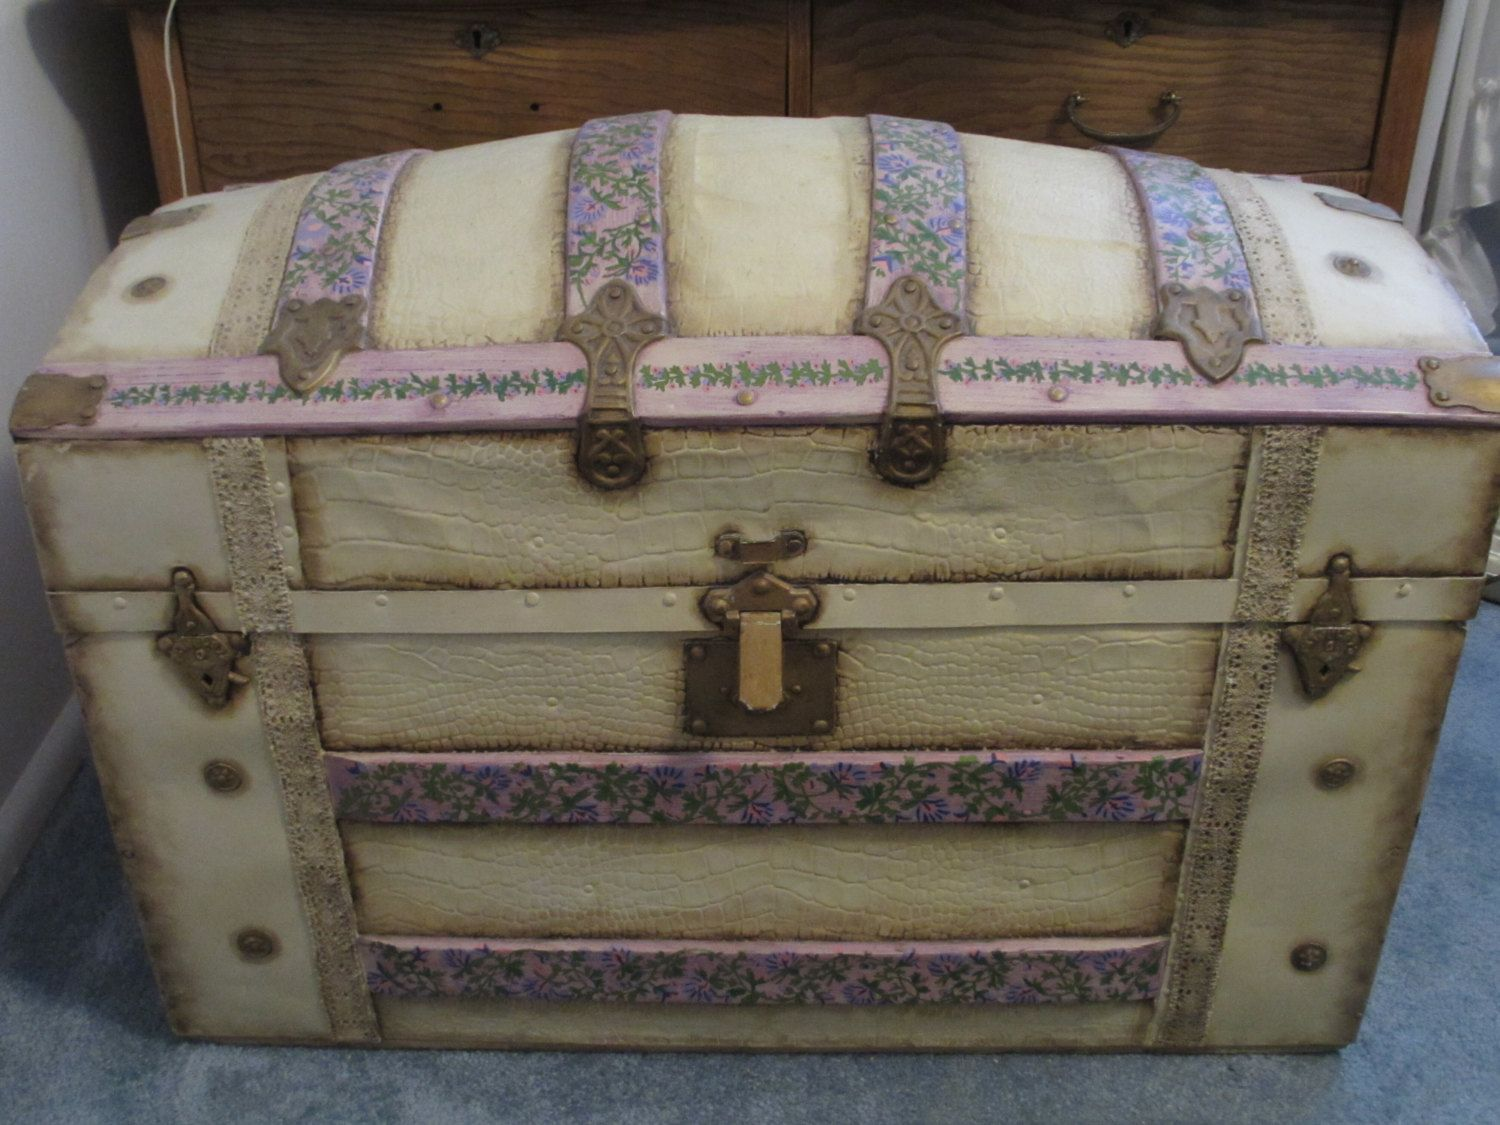 Antique Keepsake Trunk Via Etsy Trunks And Chests